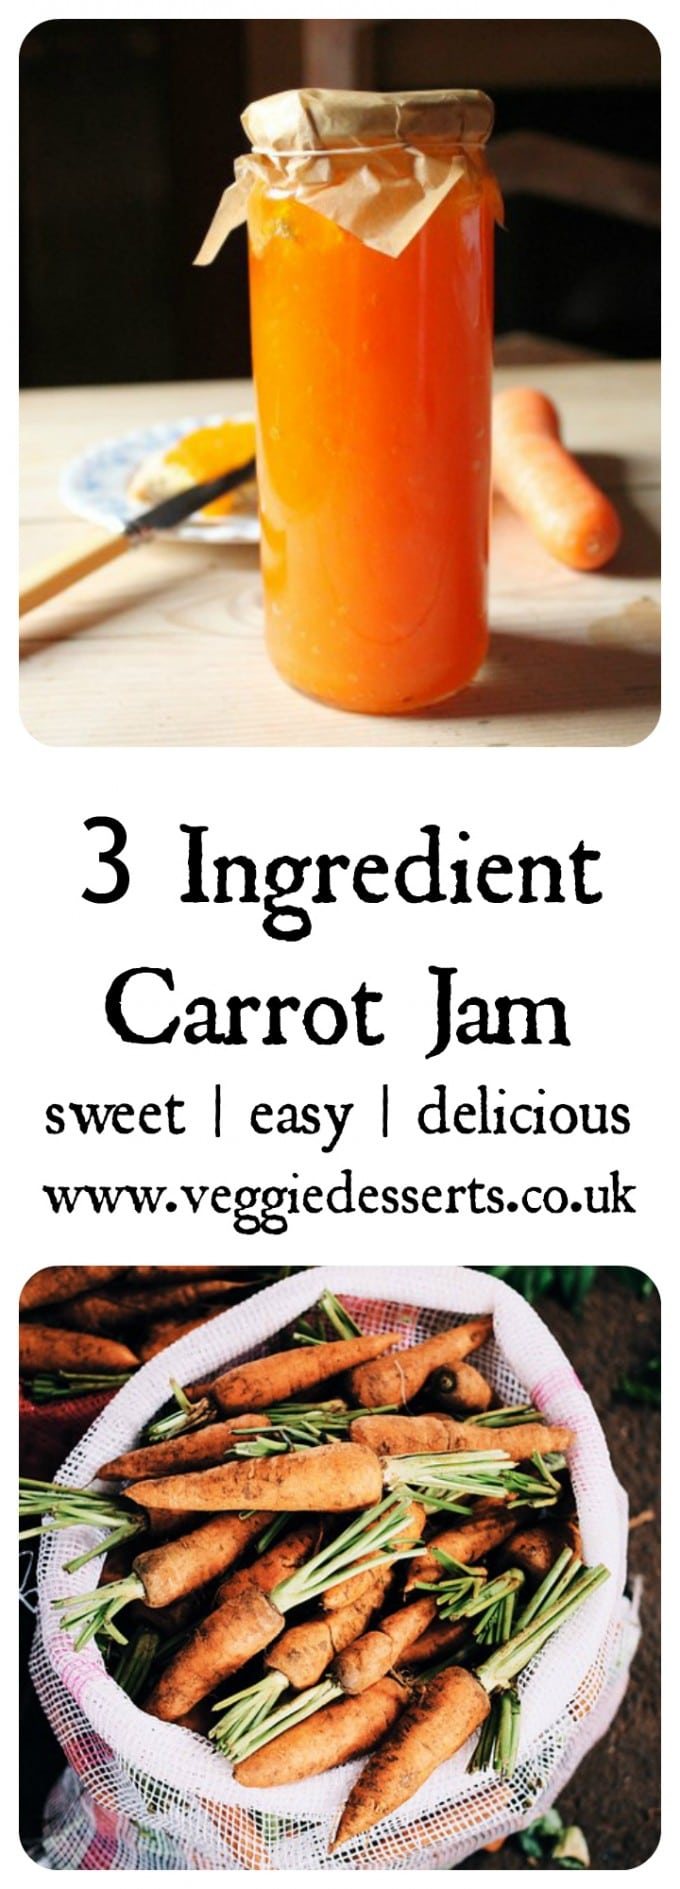 Carrot Jam - a quick and easy 3 ingredient vegetable jam. No pectin or unusual ingredients, just carrots, lemon and sugar! It tastes deliciously like apricot jam and is based on a recipe from the 1800s. Delicious on toast, pancakes, waffles and more.  #vegetablejam #jam #jamrecipe #carrotjam #carrots #carrotrecipe